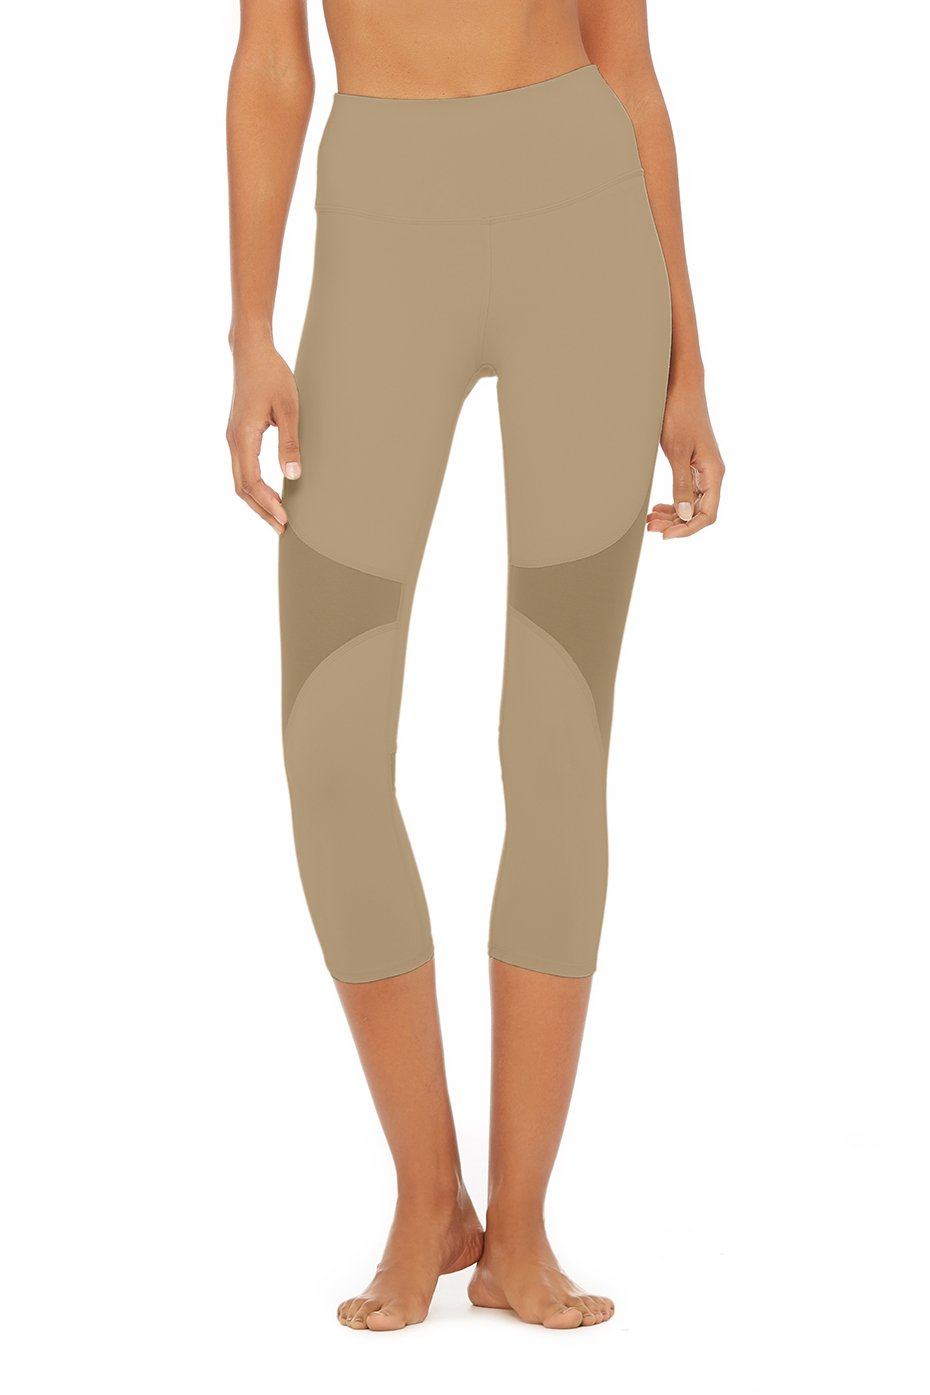 Alo Yoga XS High-Waist Coast Capri - Gravel